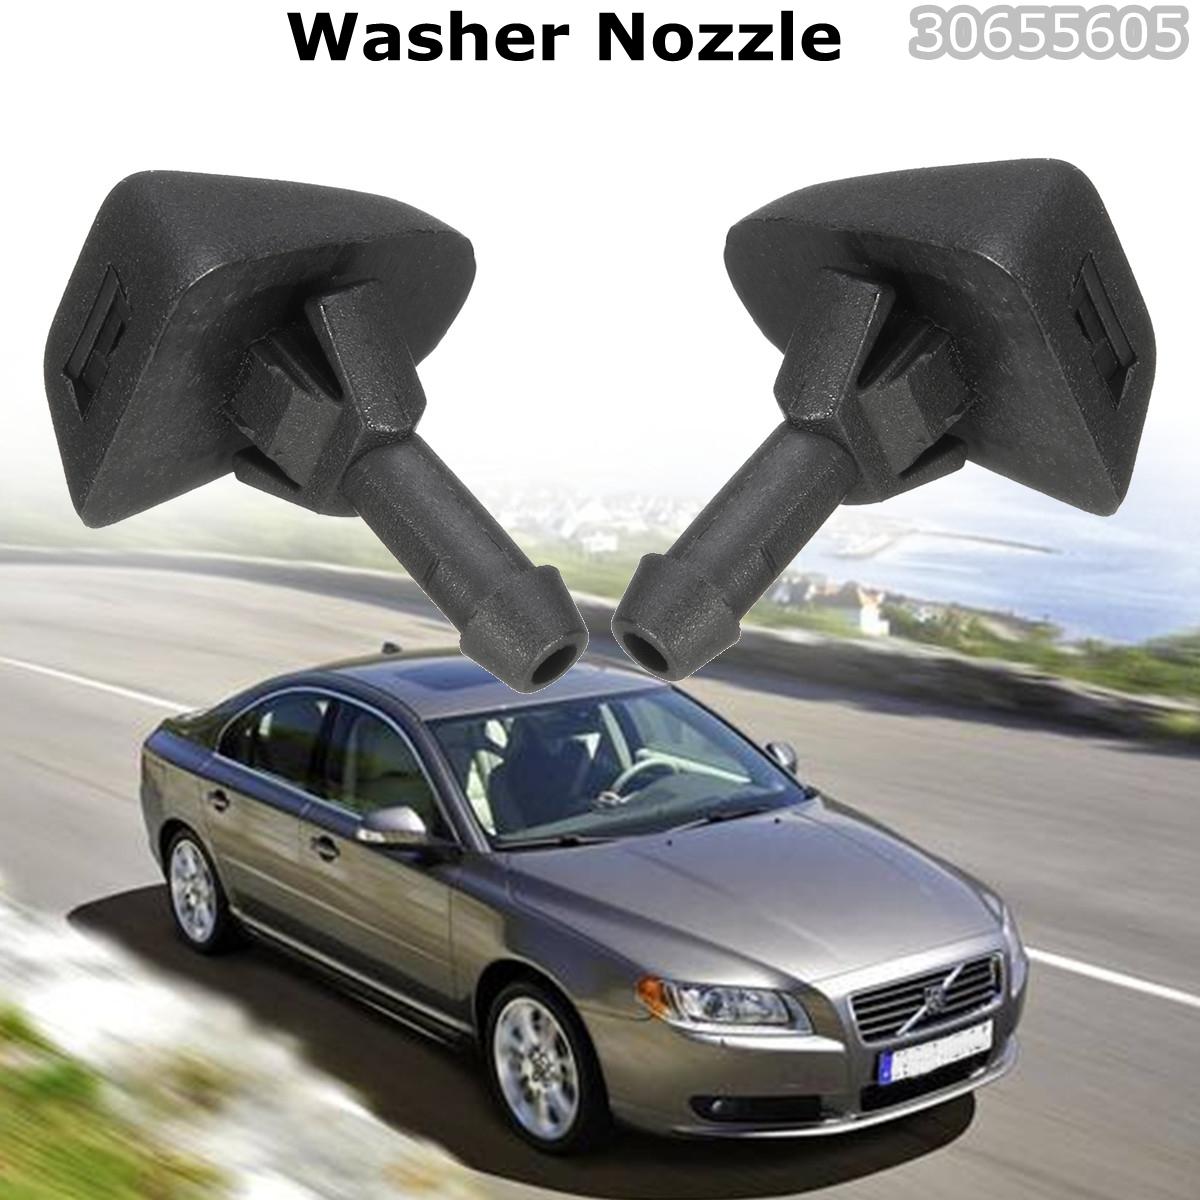 One Pair Car Parts Windscreen Washer Nozzle Squirter Jet 30655605 Windshield Washer Nozzles For <font><b>Volvo</b></font> XC90 C30 C70 S40 image